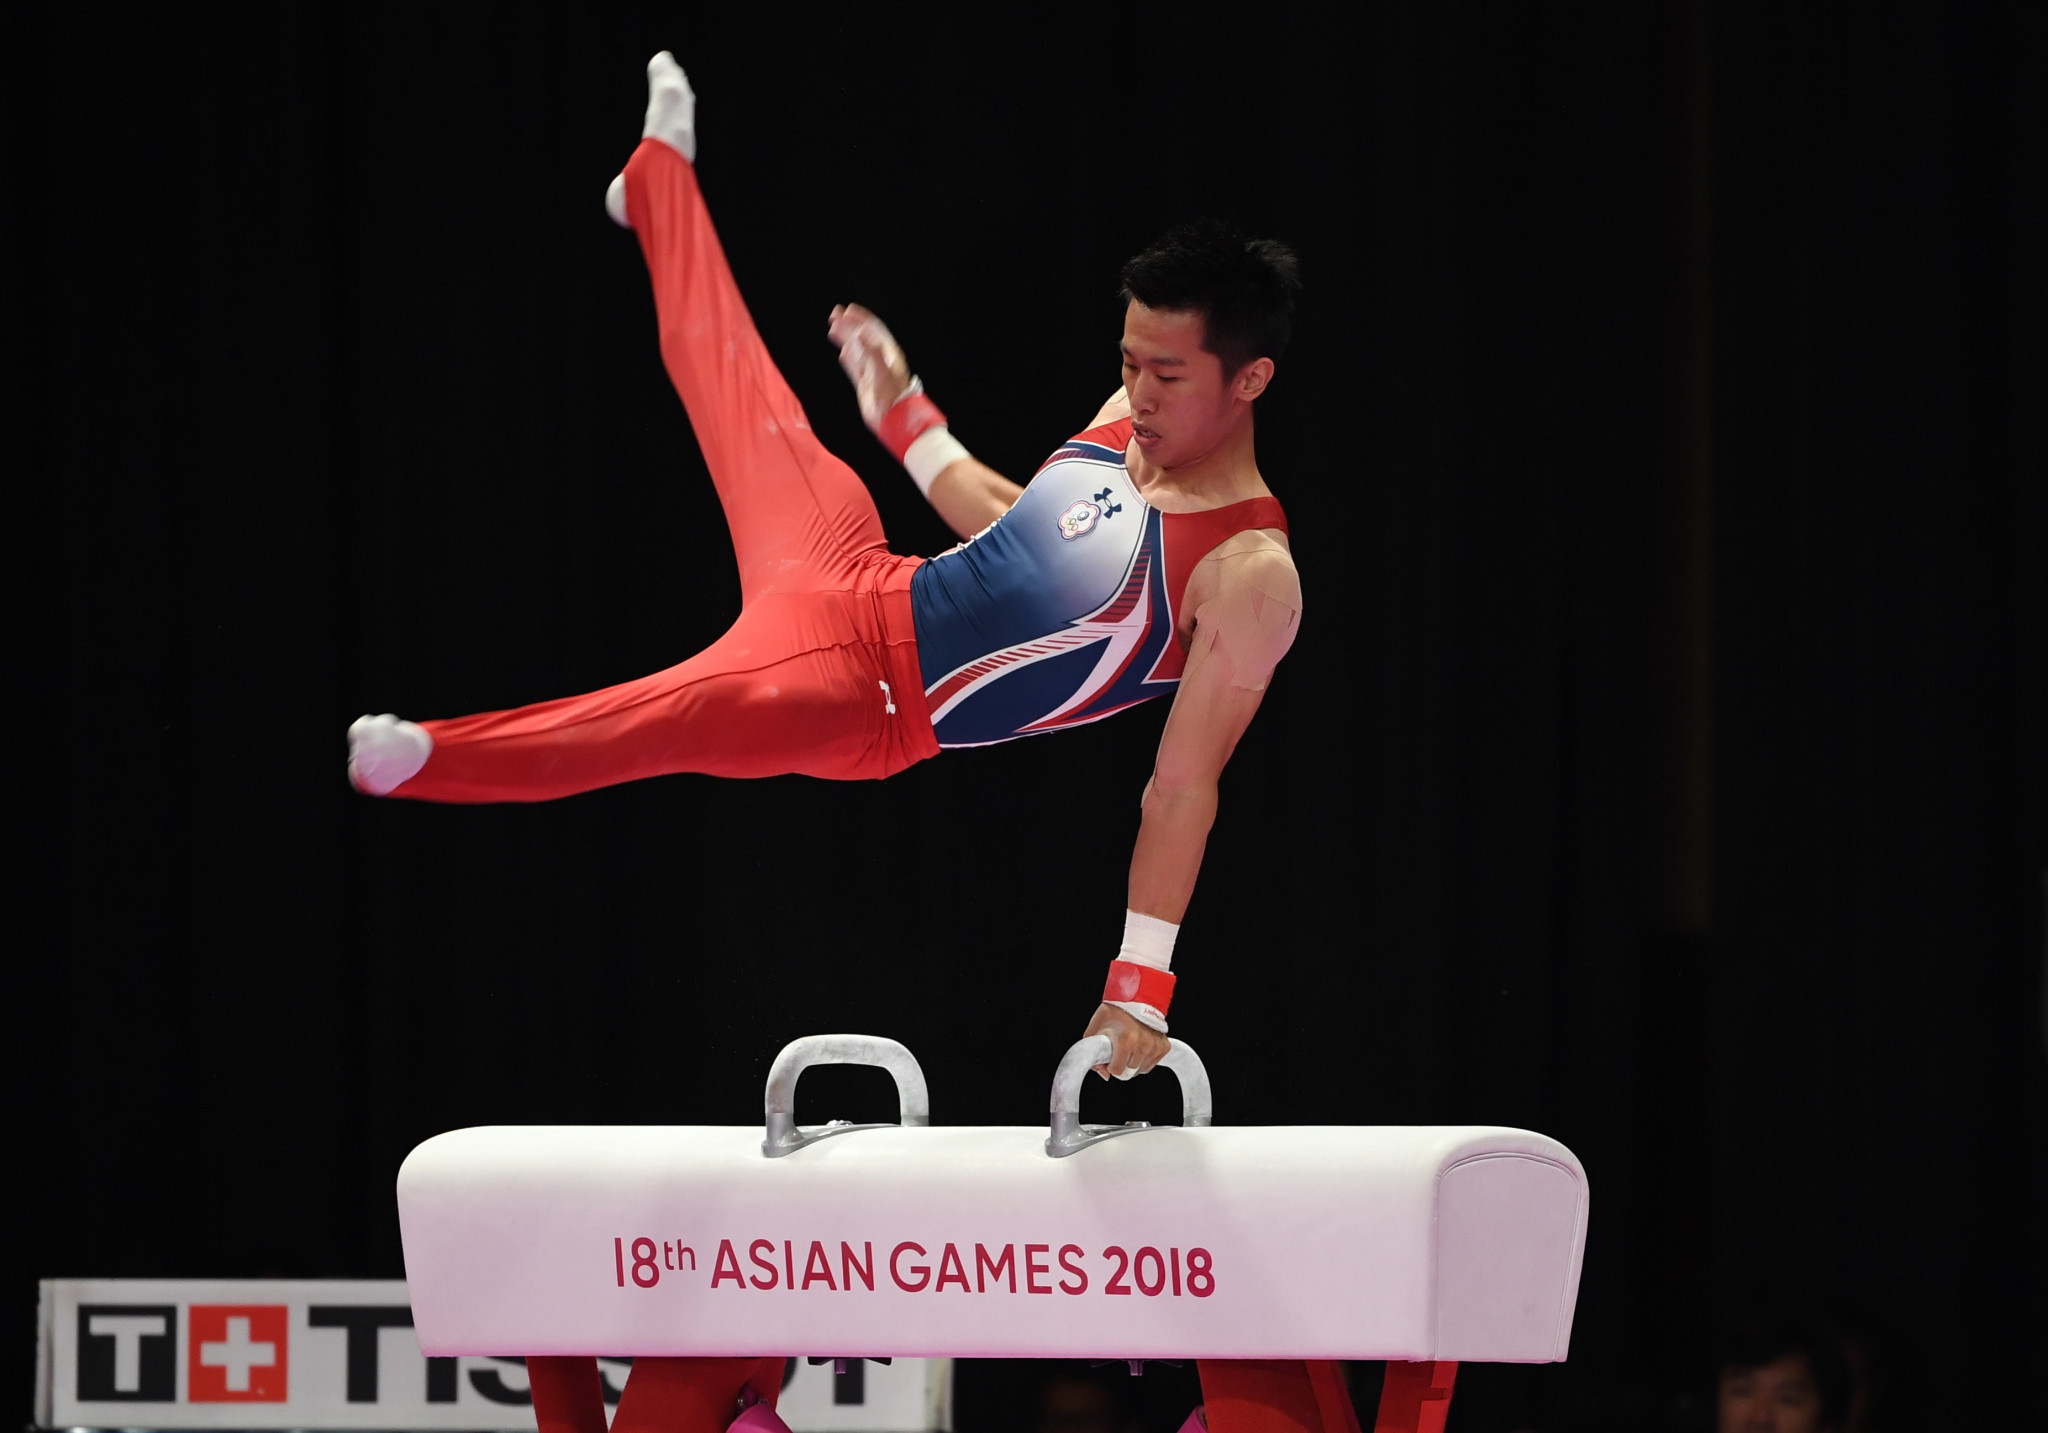 Chih Kai Lee Won Chinese Taipeis First Artistic Gymnastics Gold In Asian Games History Getty